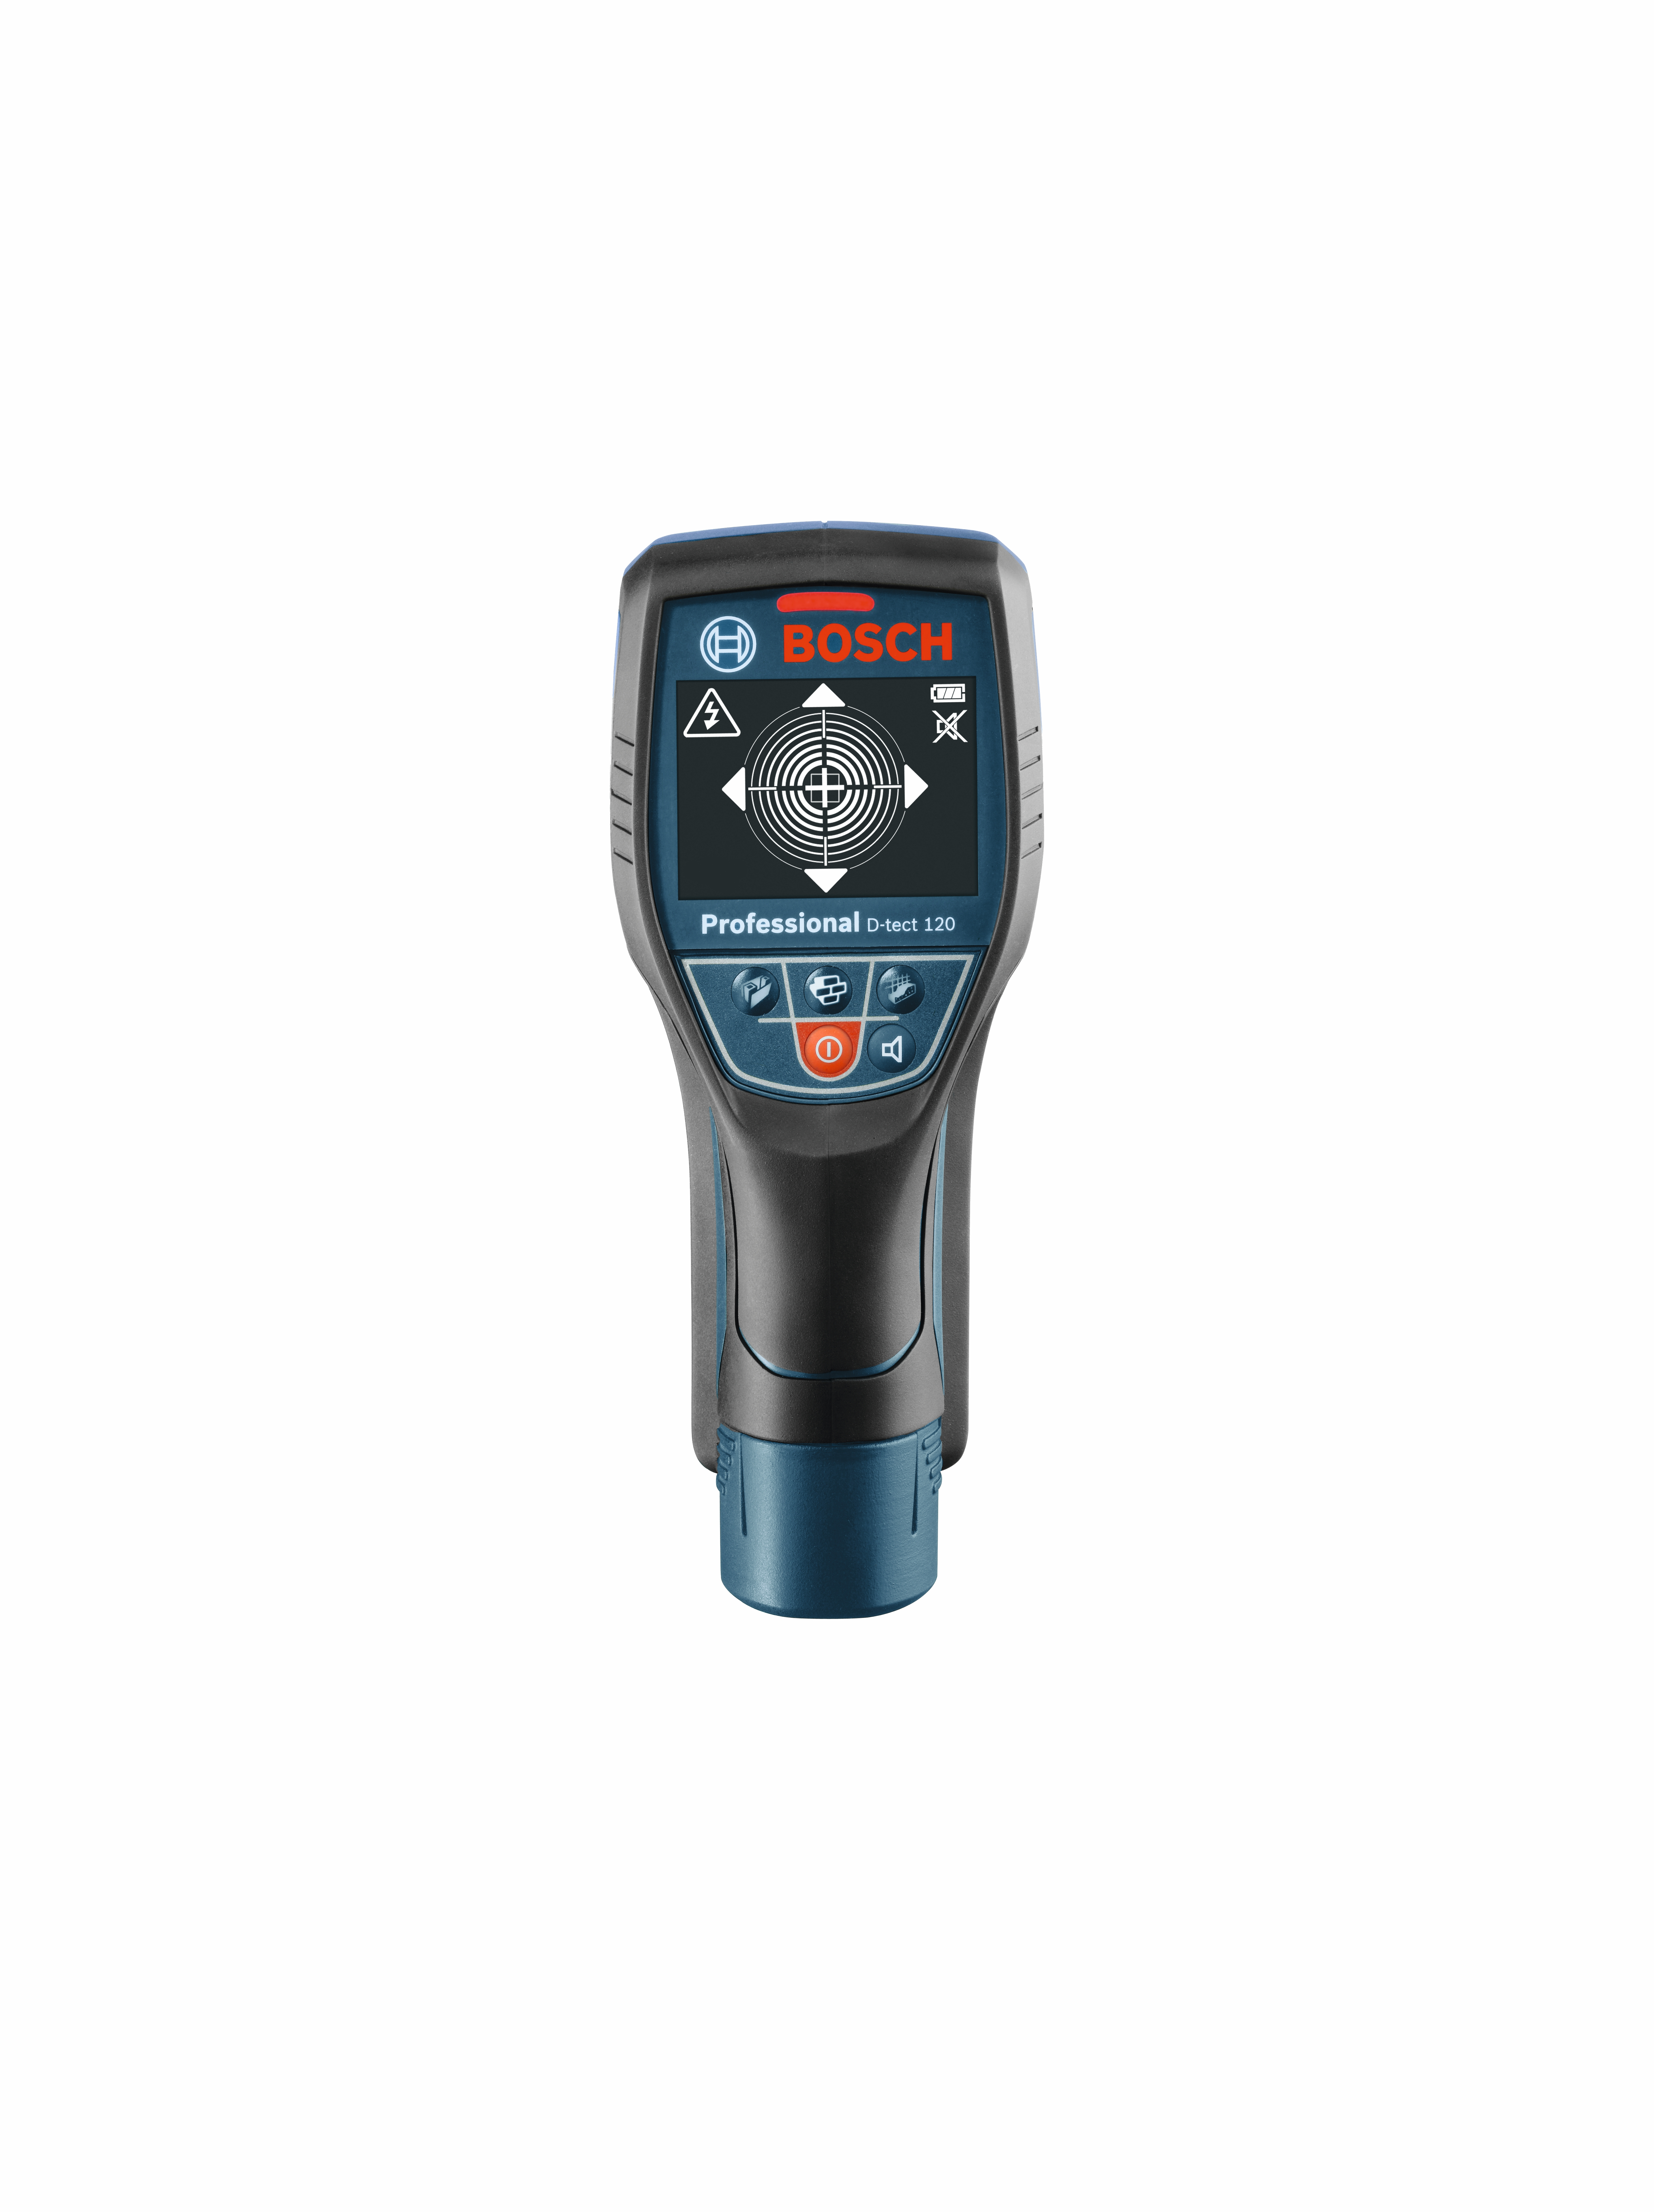 Bosch D-TECT120 Wall / Floor Scanner